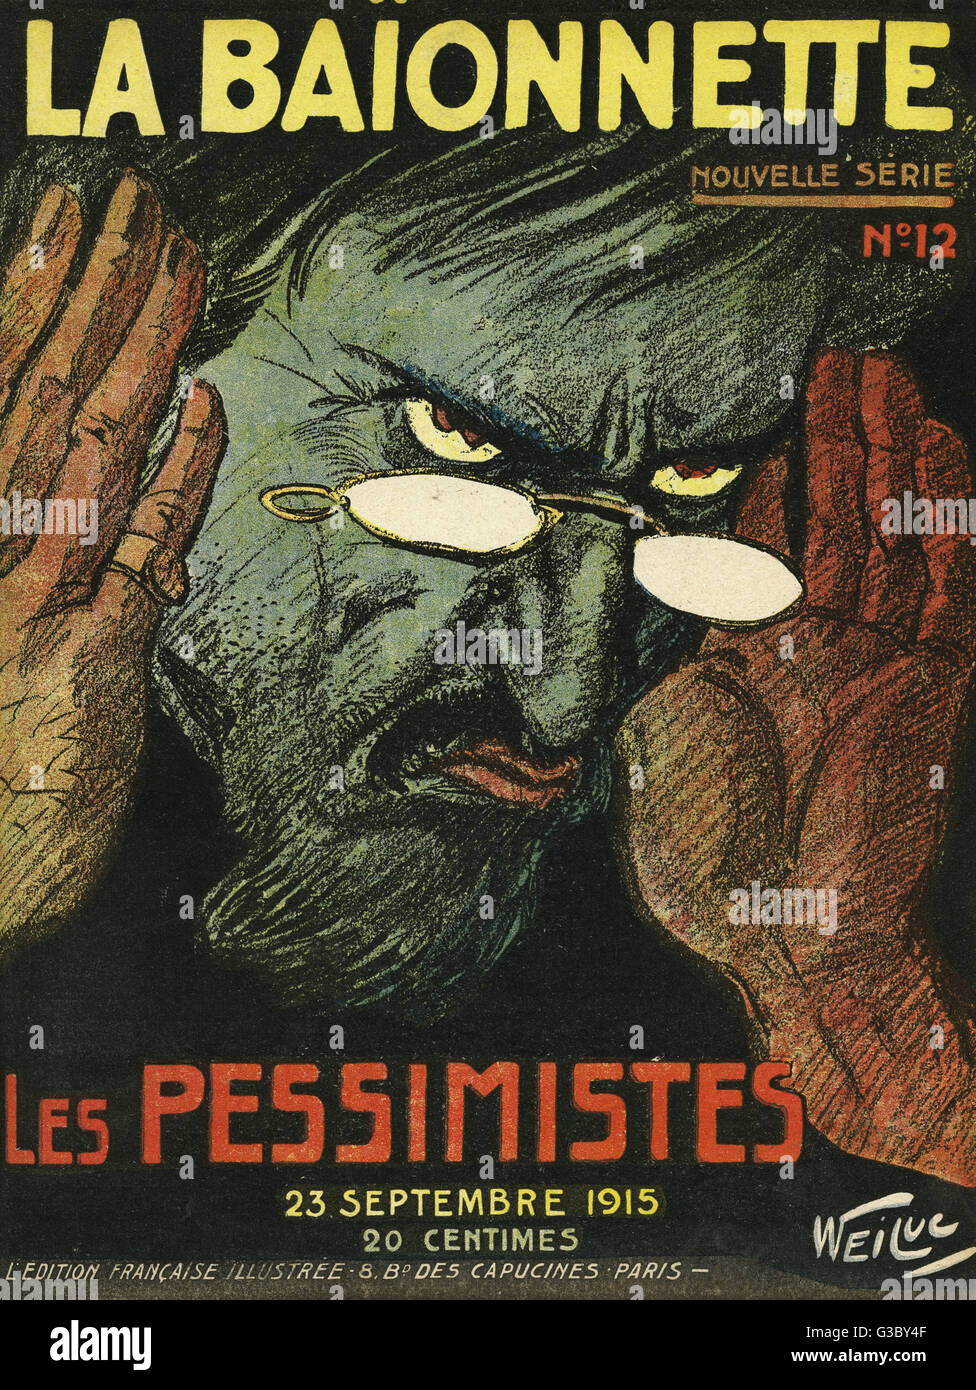 Front cover of La Baionnette, an issue focusing on pessimists, showing a gloomy man scowling and covering his ears - Stock Image